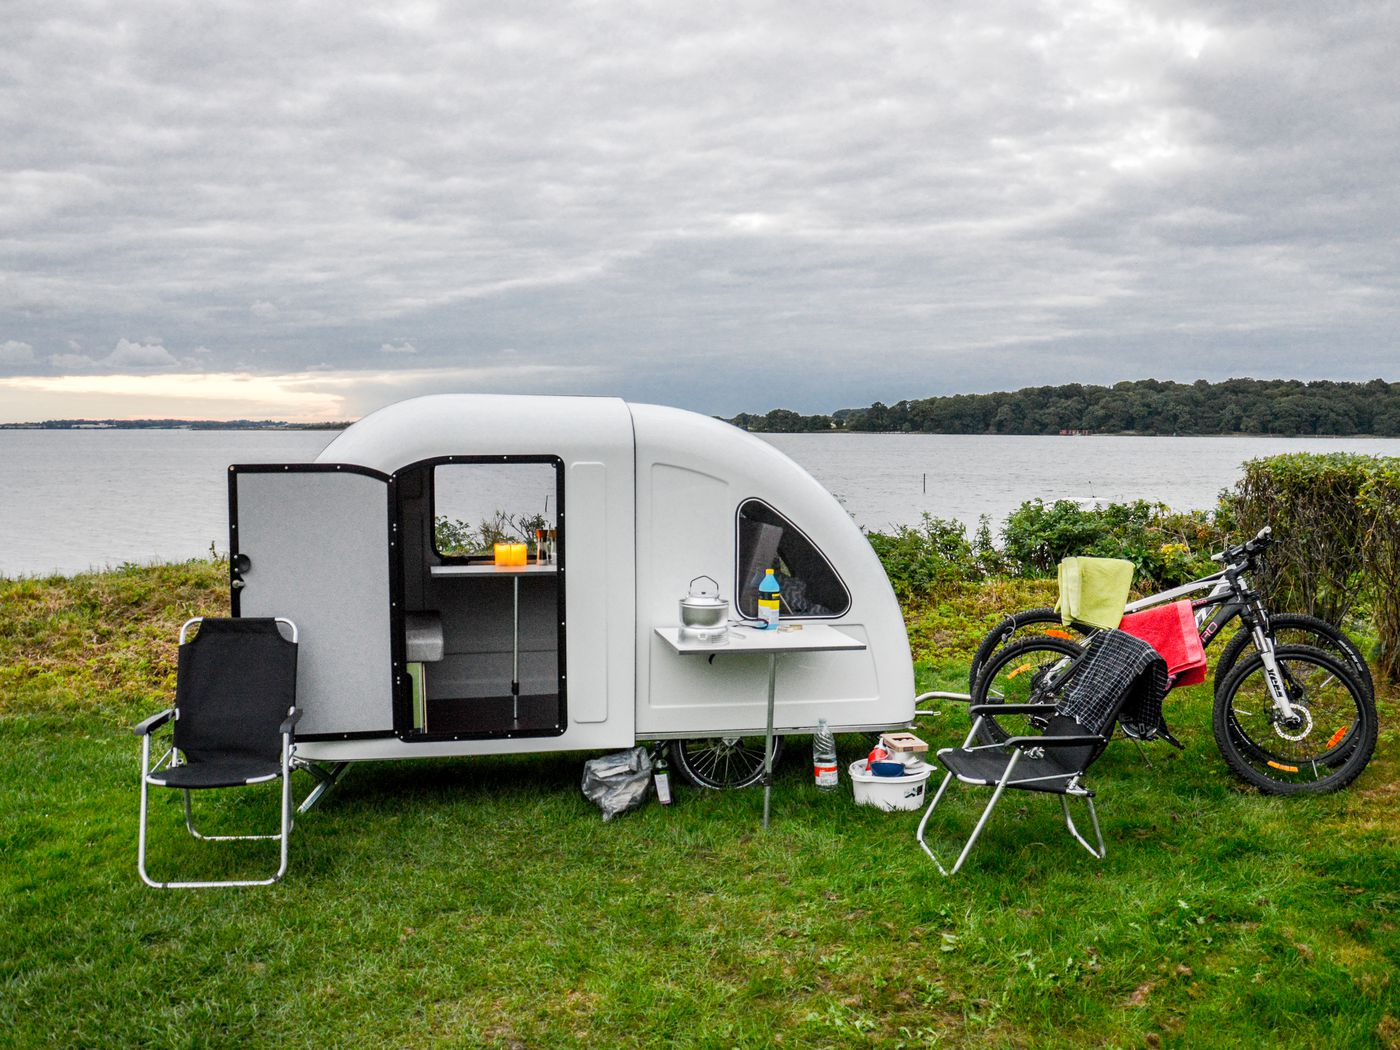 This tiny camper trailer is pulled by a bike - Curbed